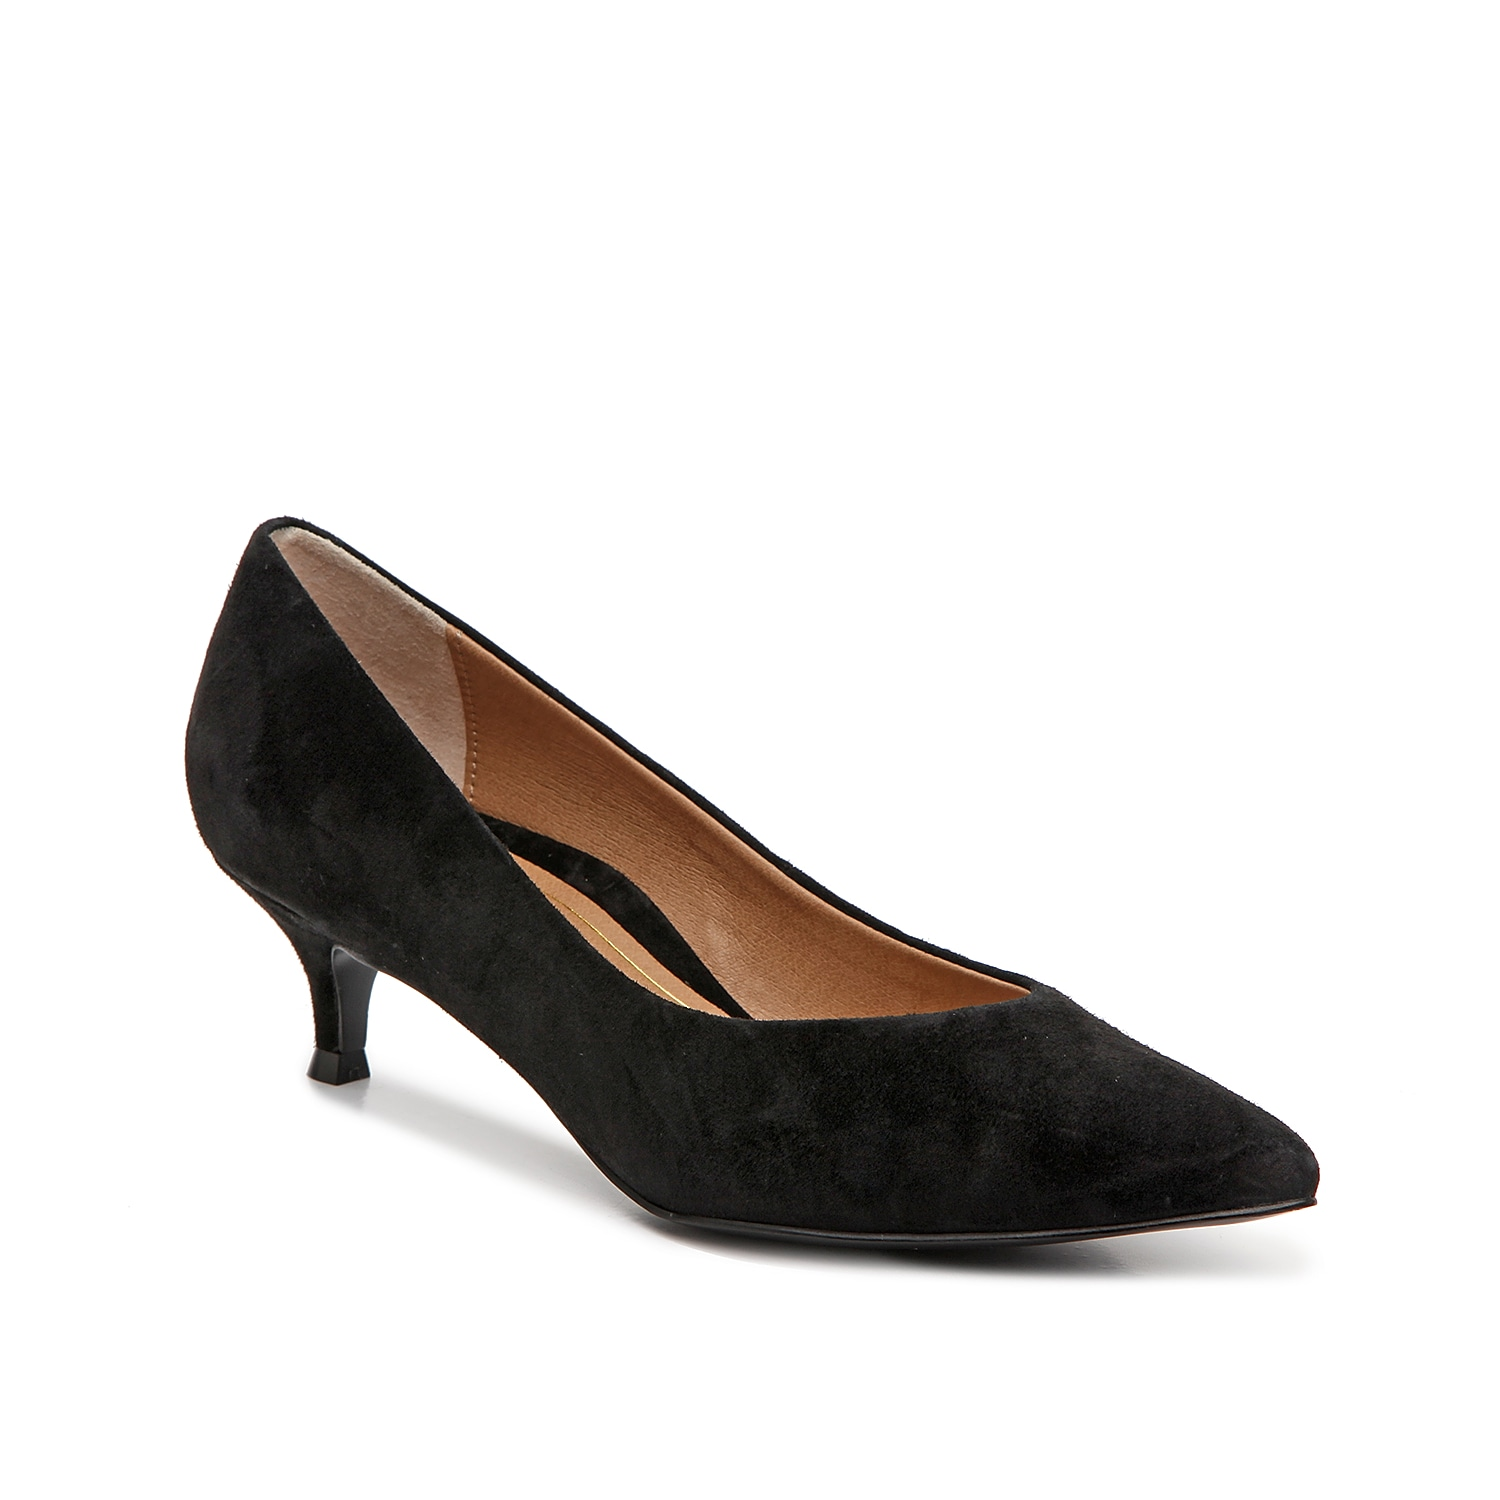 Stay comfortable even after long days at the office in the Josie pump from Vionic. A supportive footbed realigns your foot\\\'s natural stance while the kitten heel adds the perfect amount of height.